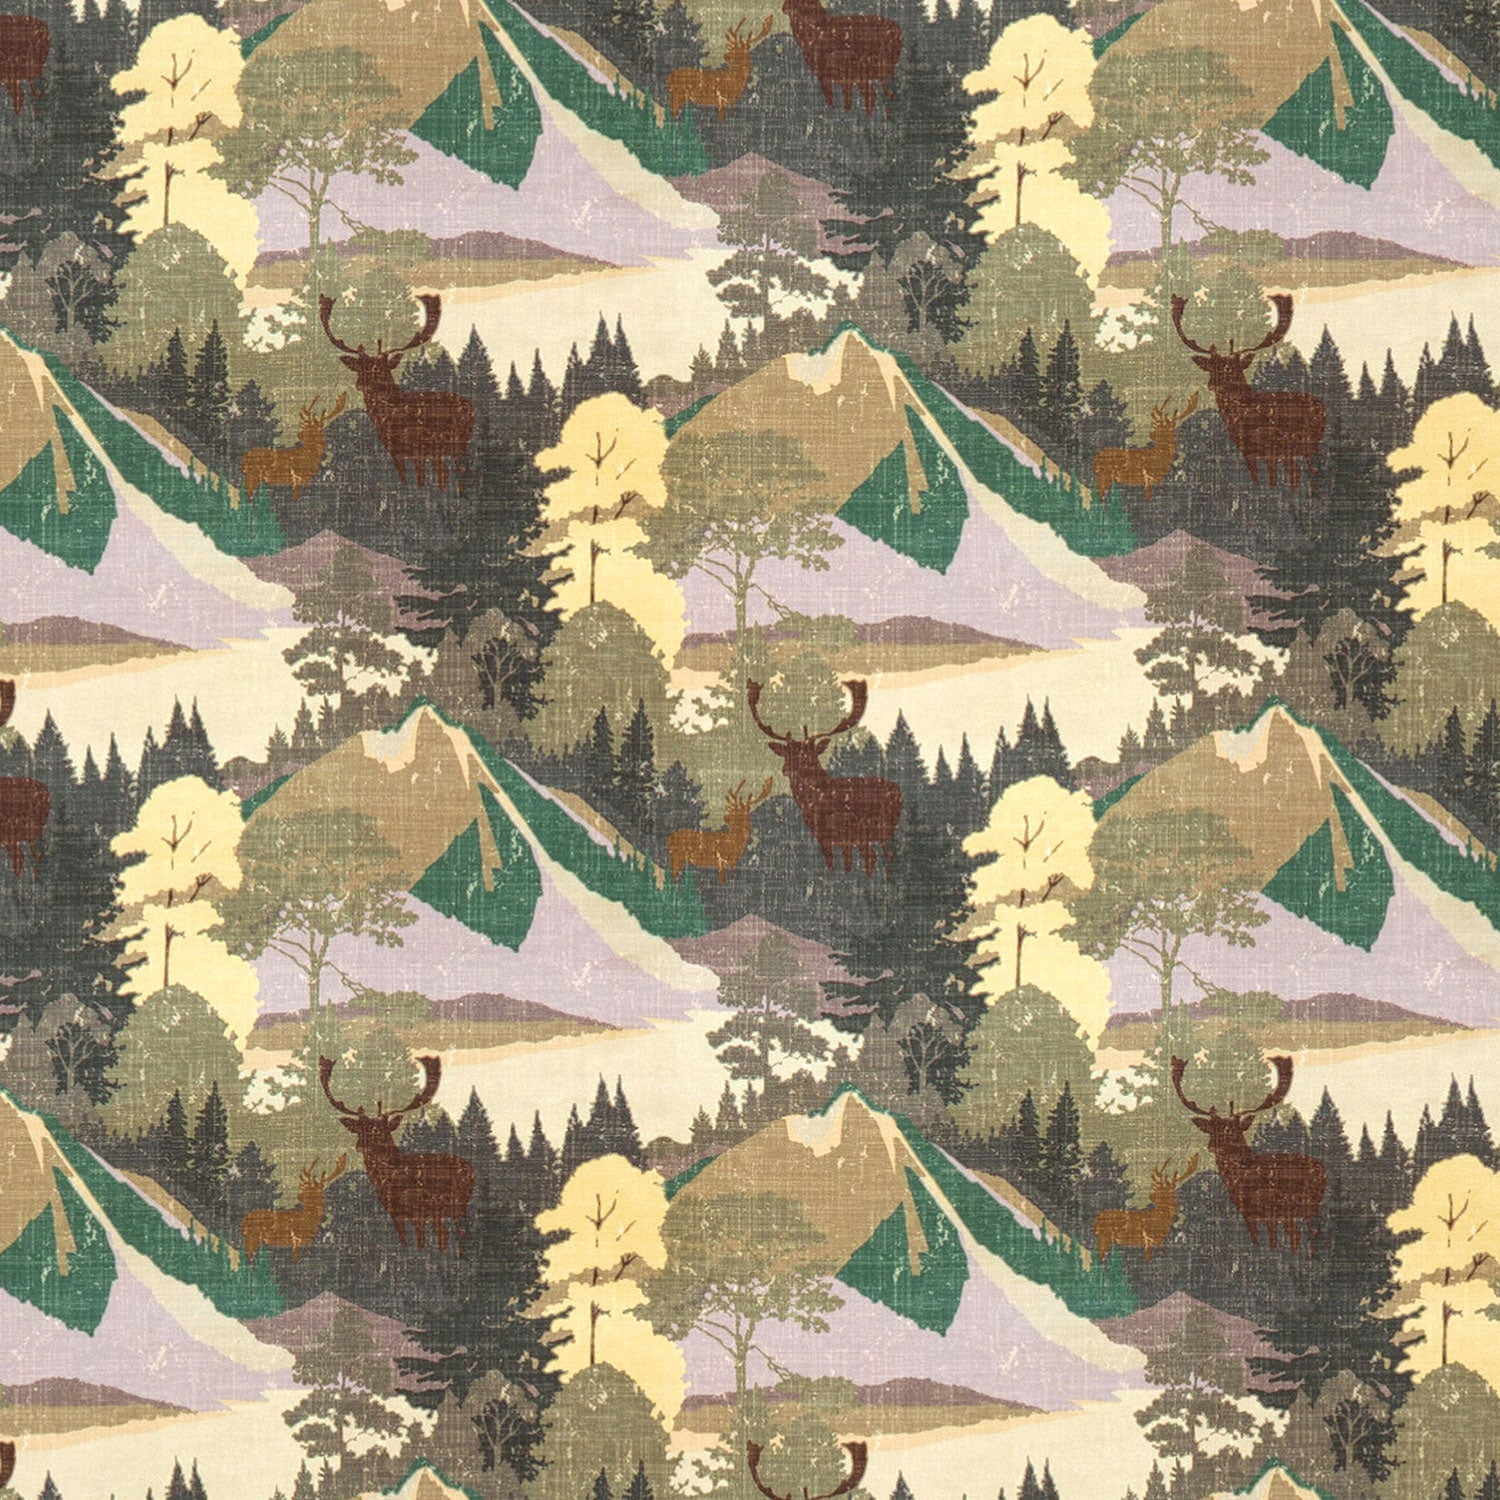 Cotton velvet fabric with green and lilac mountain scene and brown Stag design. Suitable for curtains and upholstery.